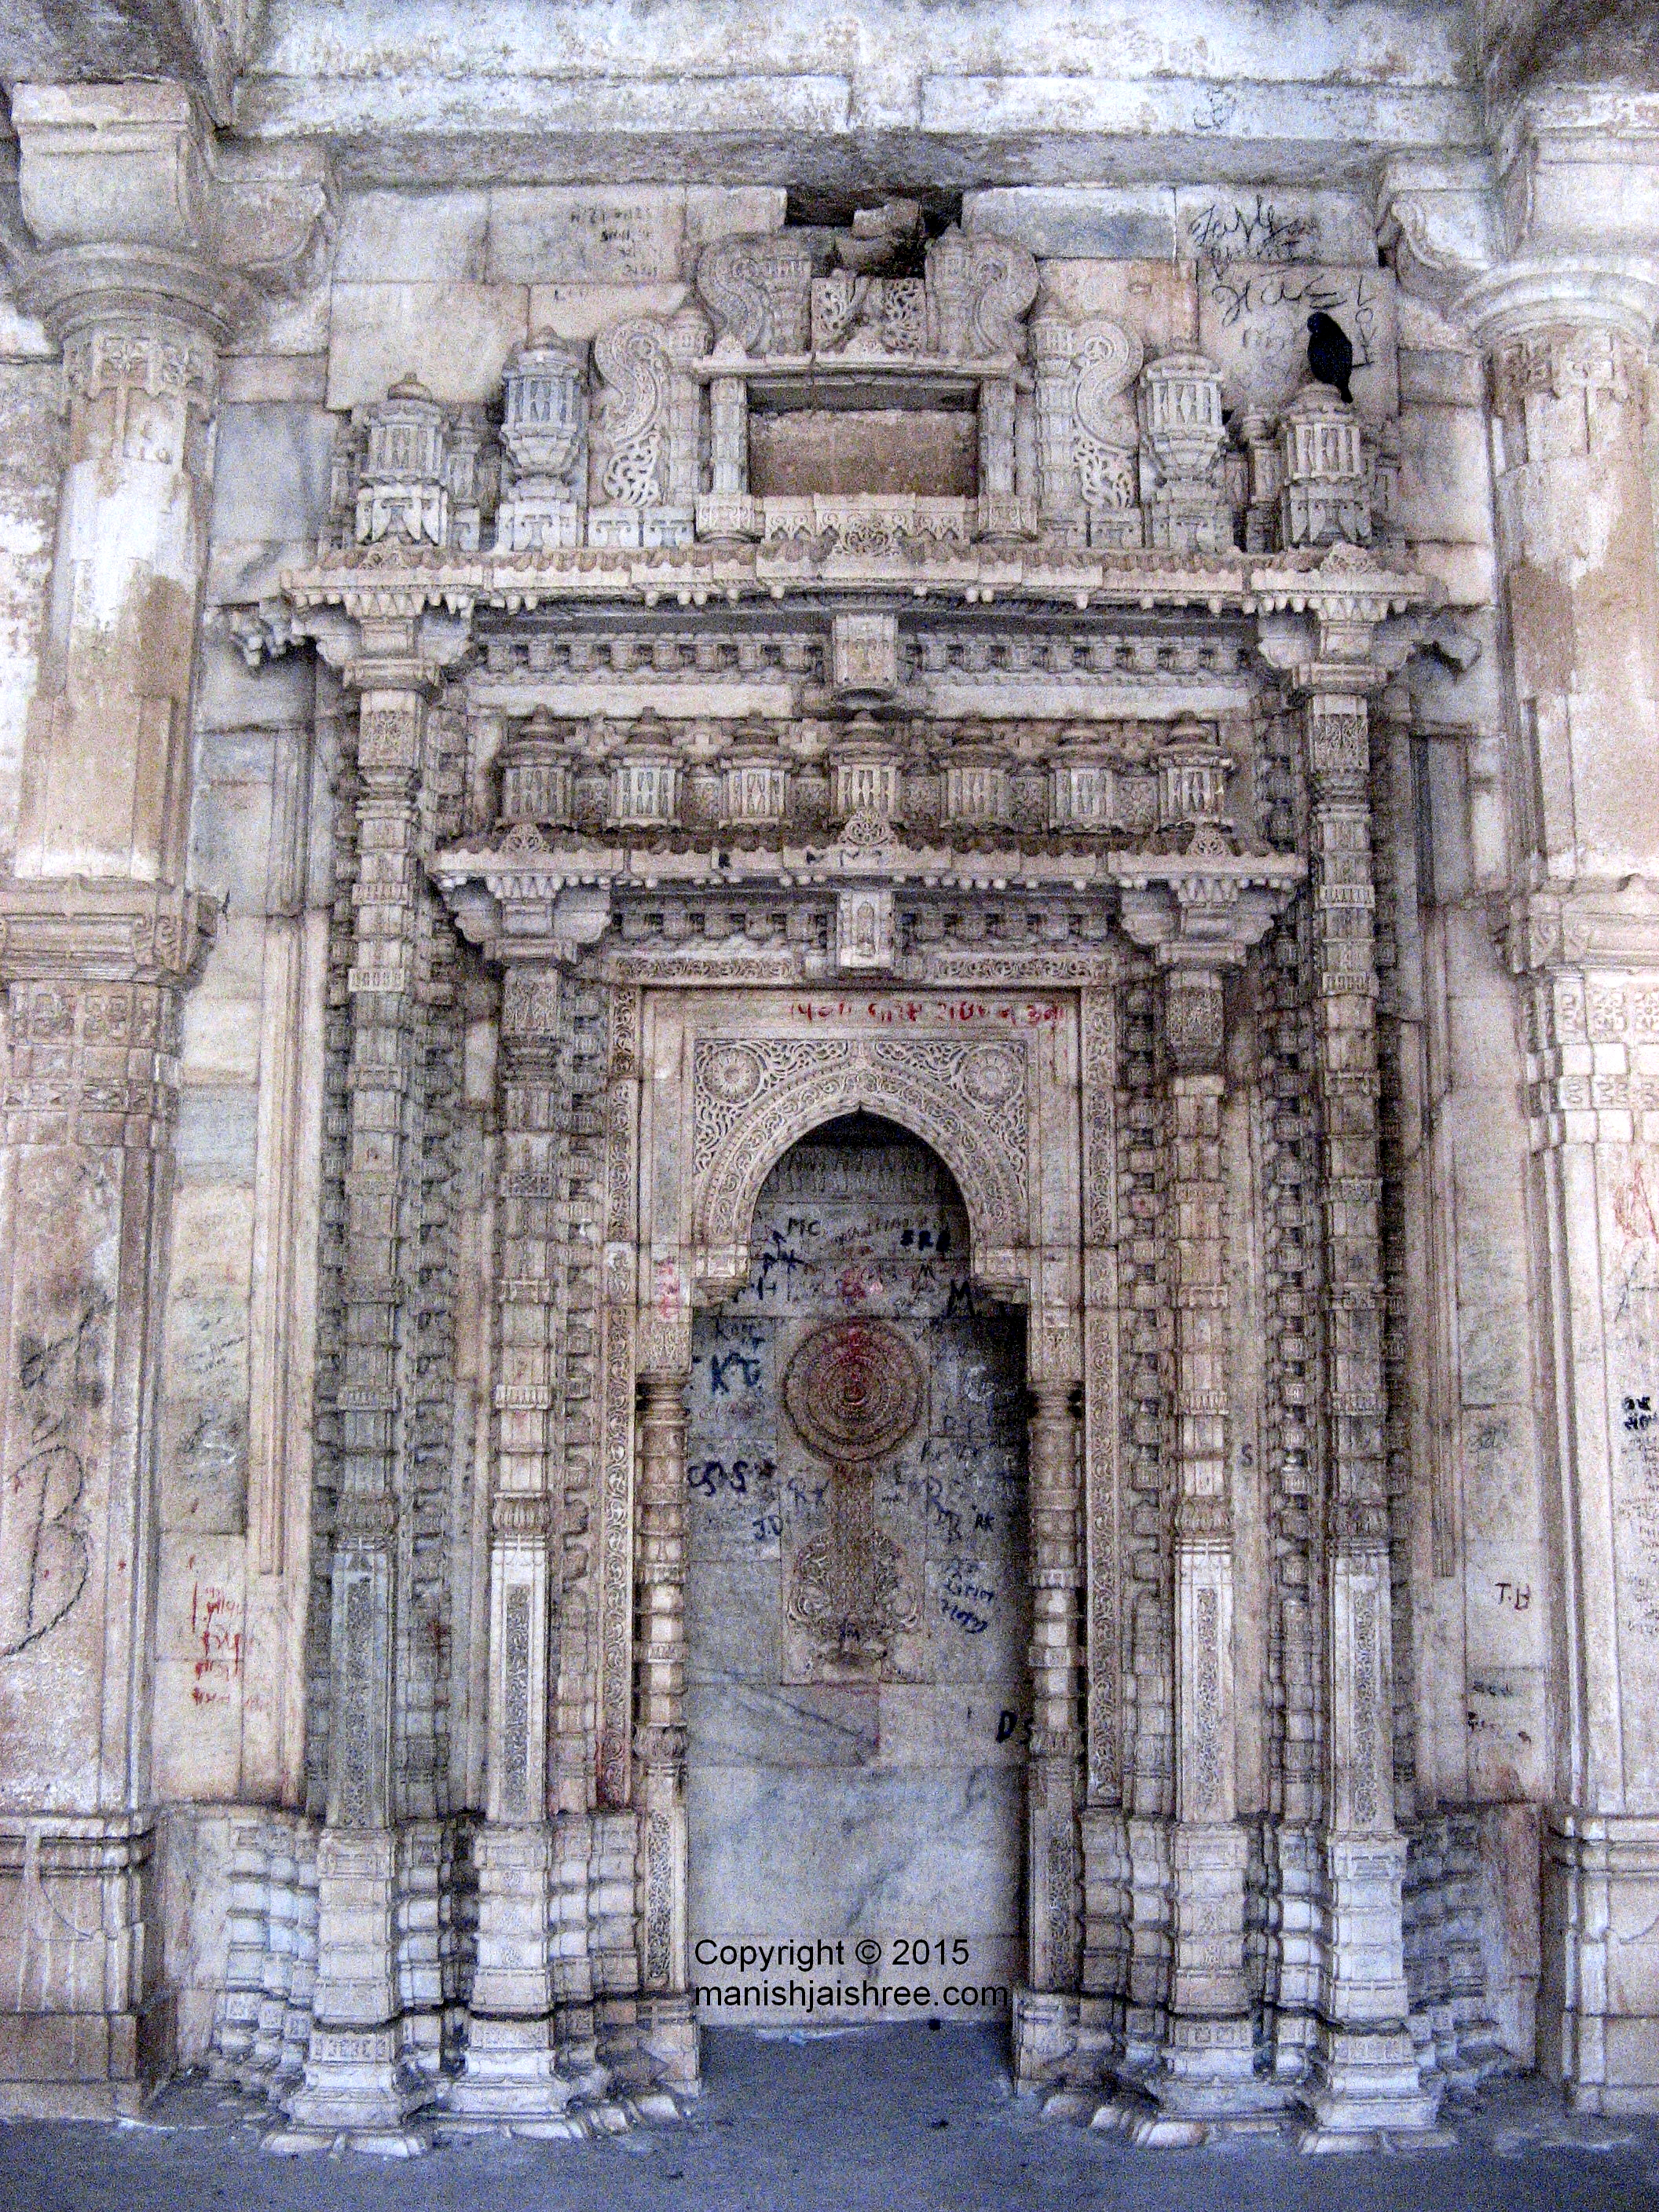 Intricate carving in Rani's Palace, Uparkot Fort, Junagarh